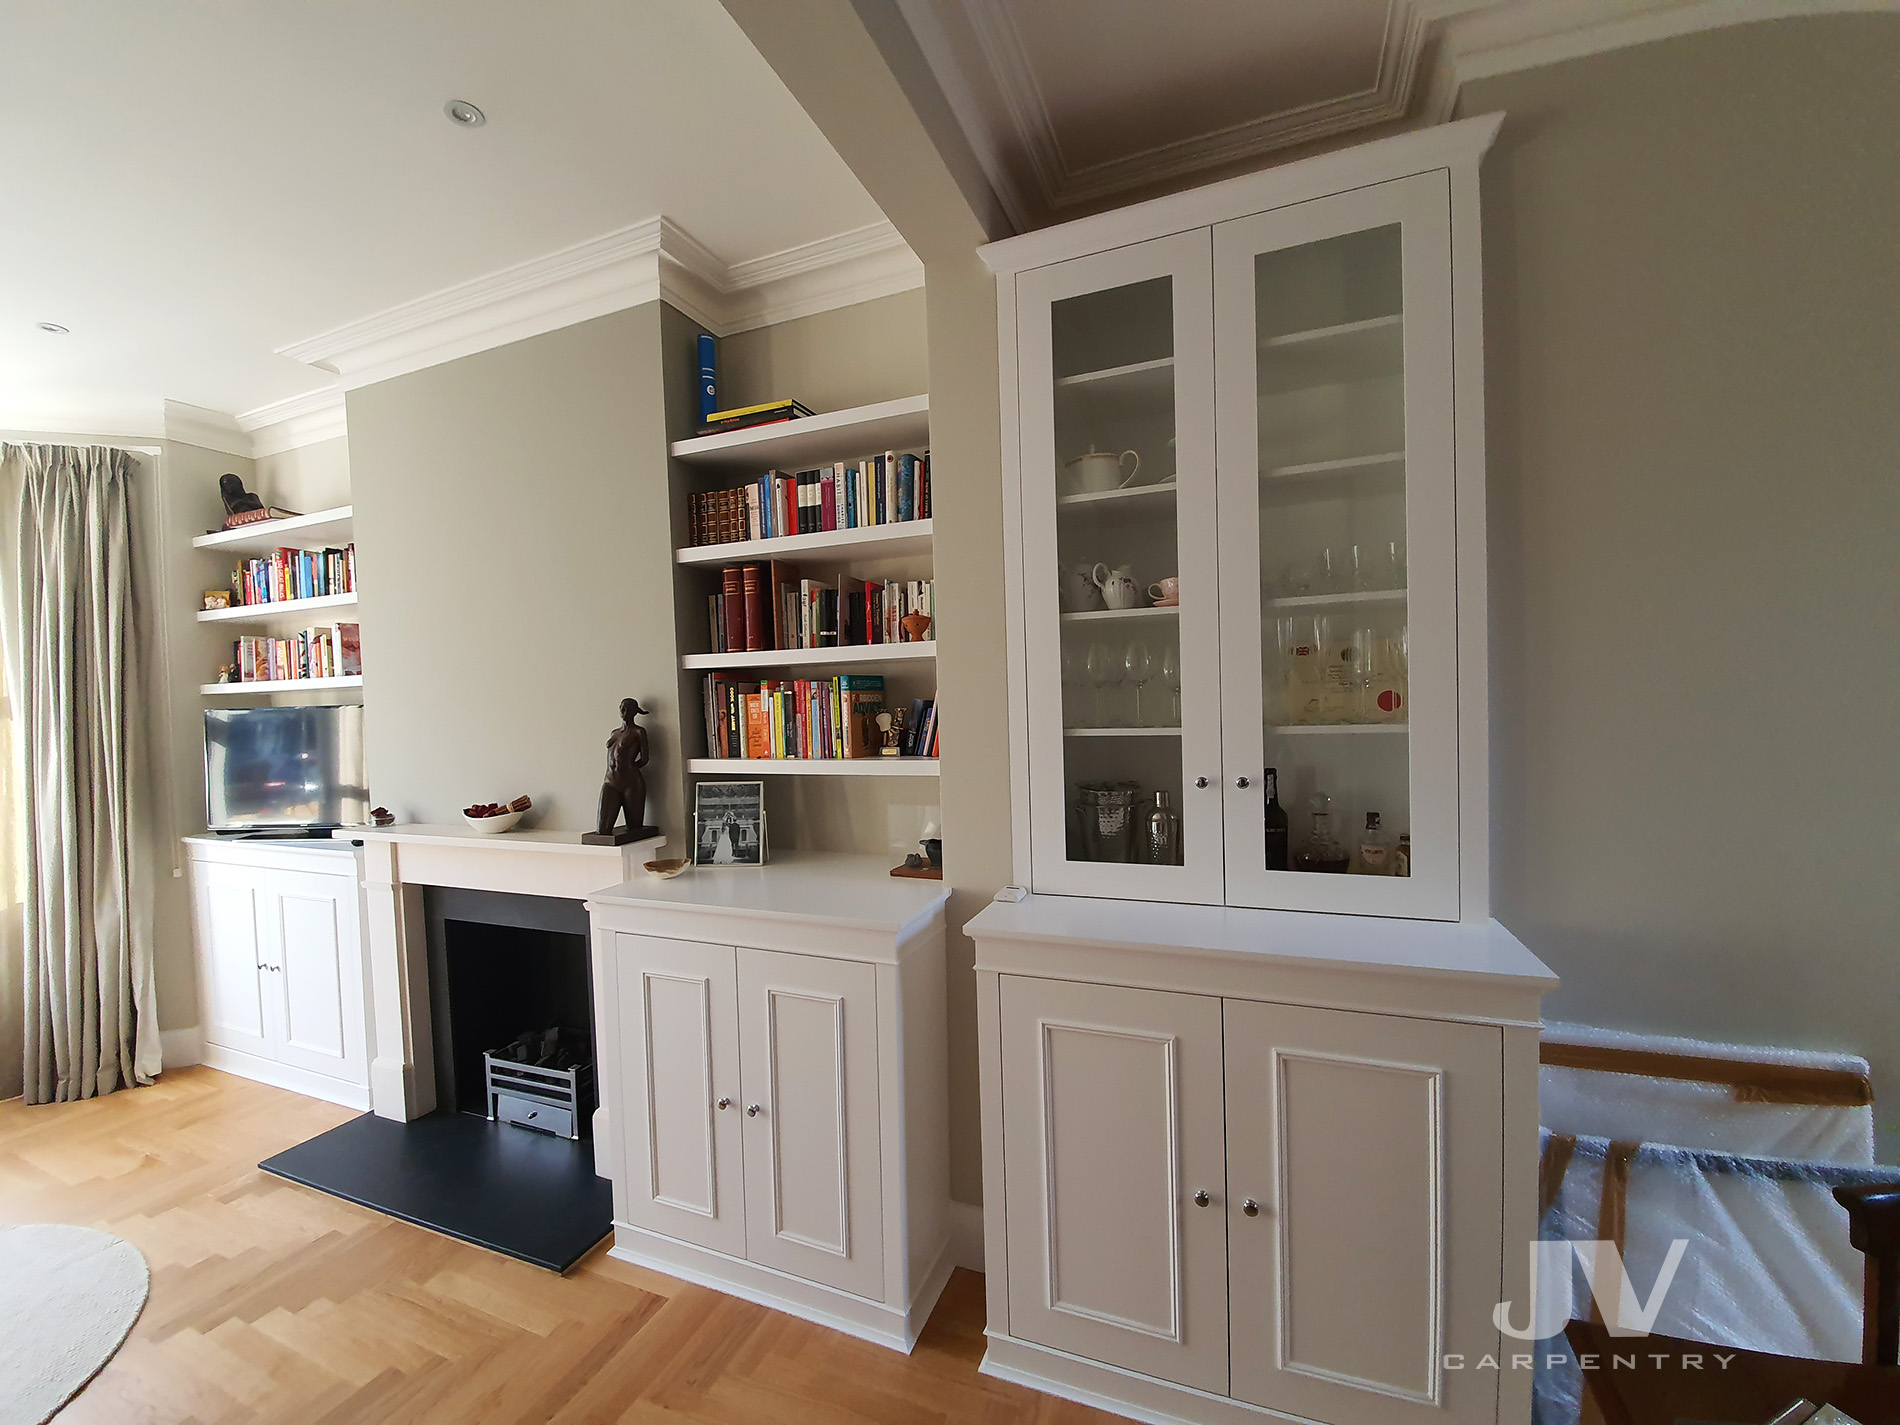 fitted alcove units and floating shelves